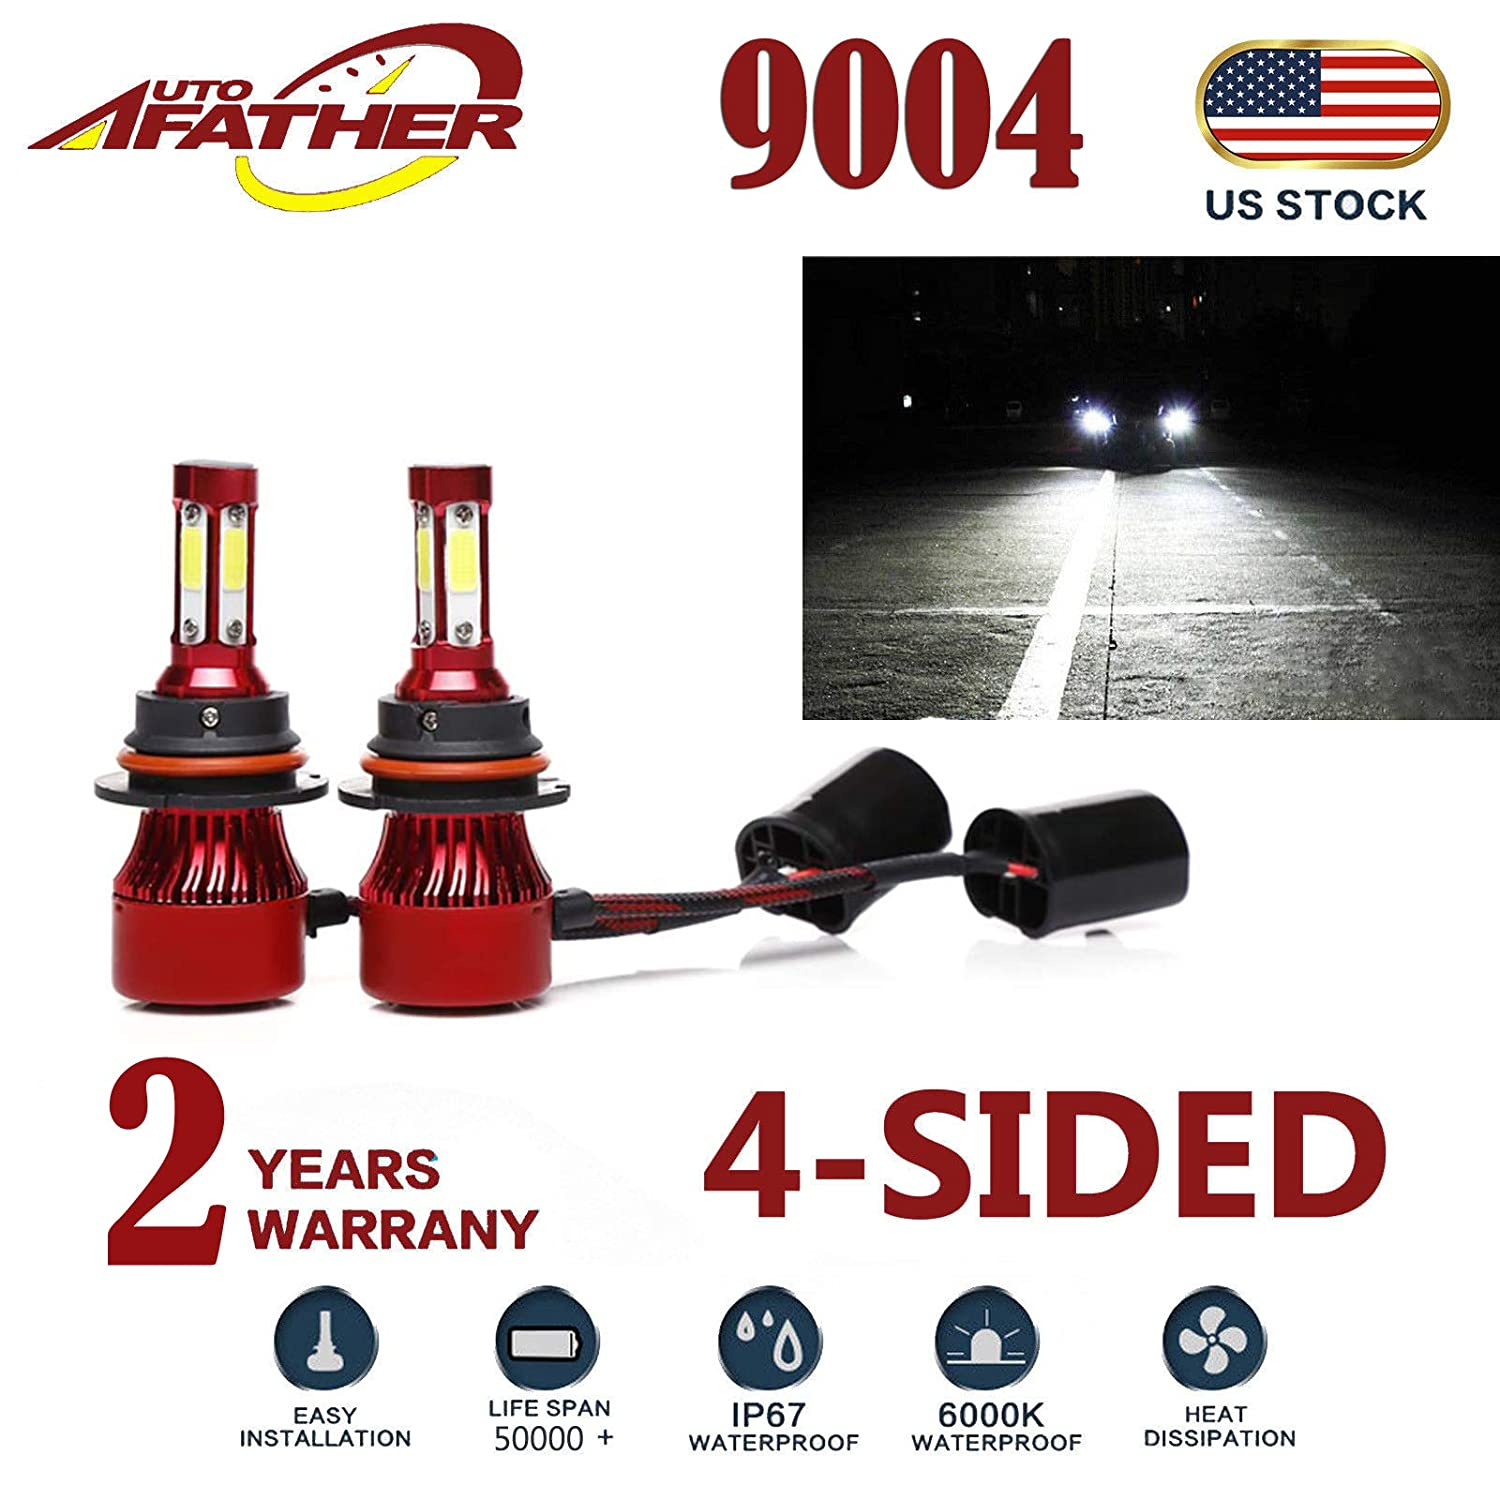 2Pcs H11 LED Headlight Bulbs Conversion Kit H8/H9 Car Headlamp 20000LM Bulbs 6000K Cool White Hi/Lo Beam/DRL / Fog Light Replace for Halogen HID, with 4-Sides Chips - Plug and Play Autobaba